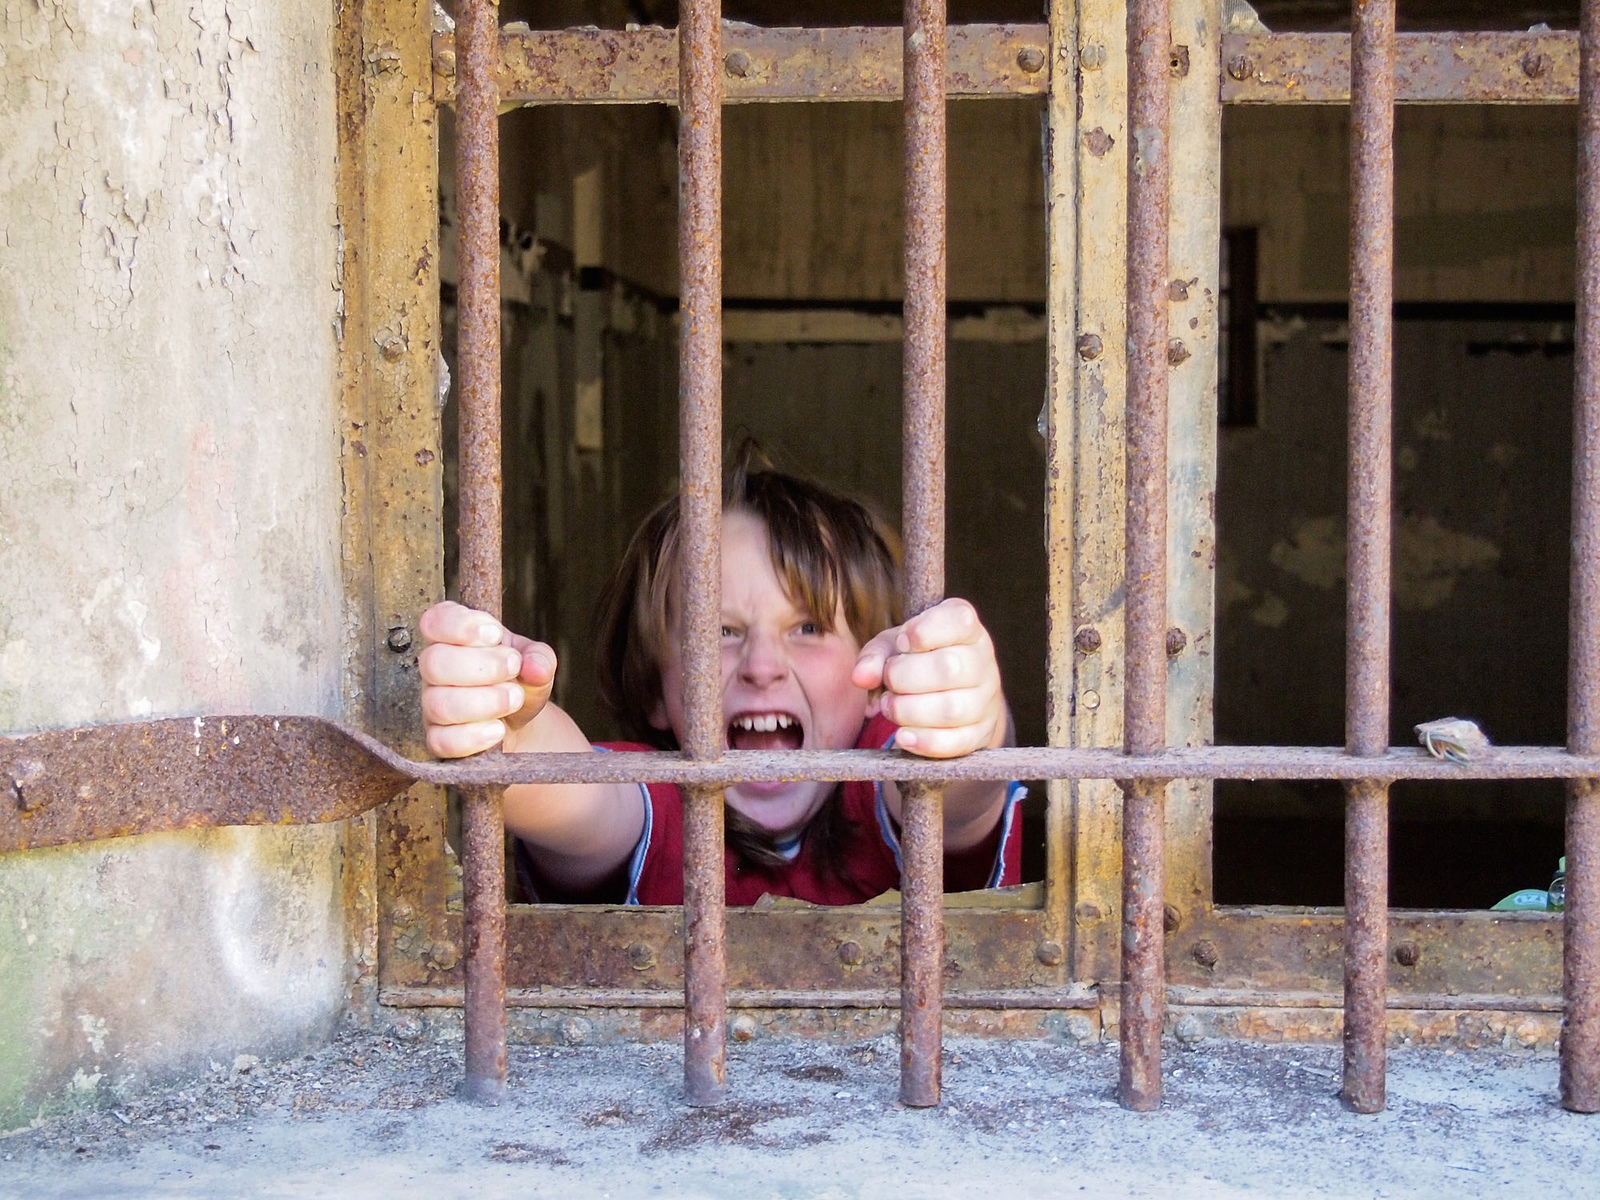 arizona felonies - child holding bars in window of a cell